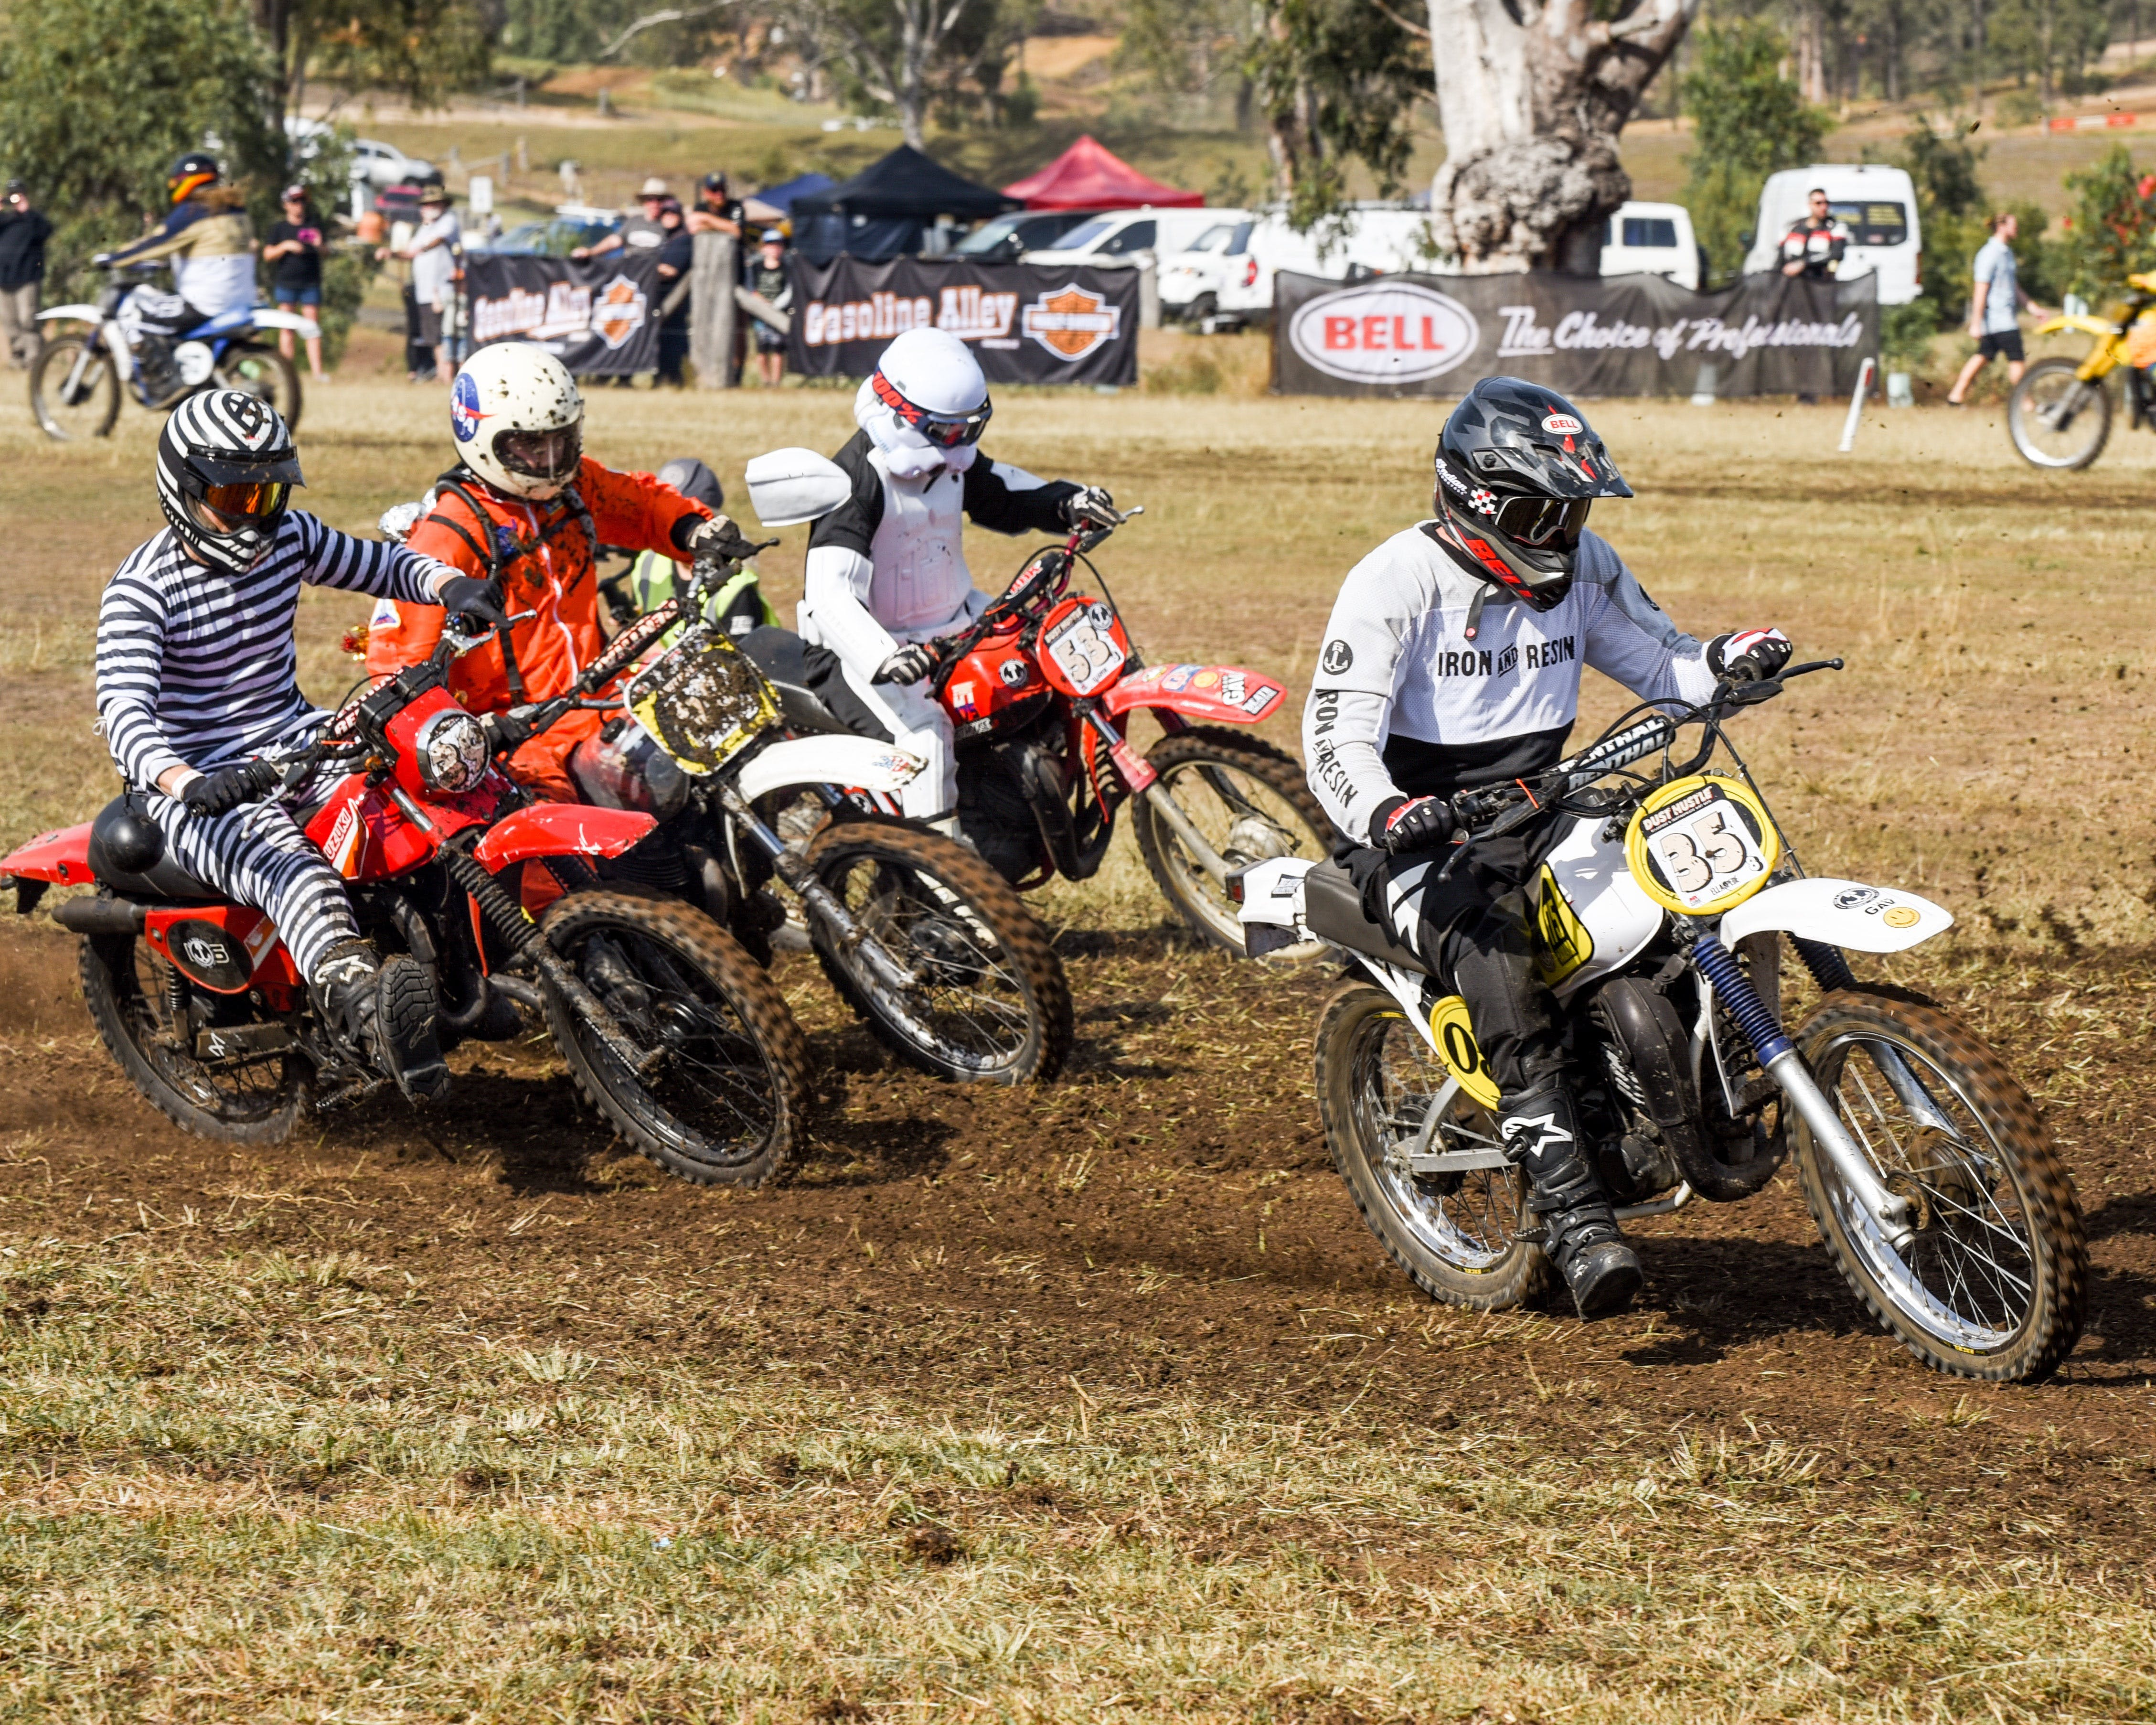 Dust Hustle Queensland Moto Park - Accommodation Perth